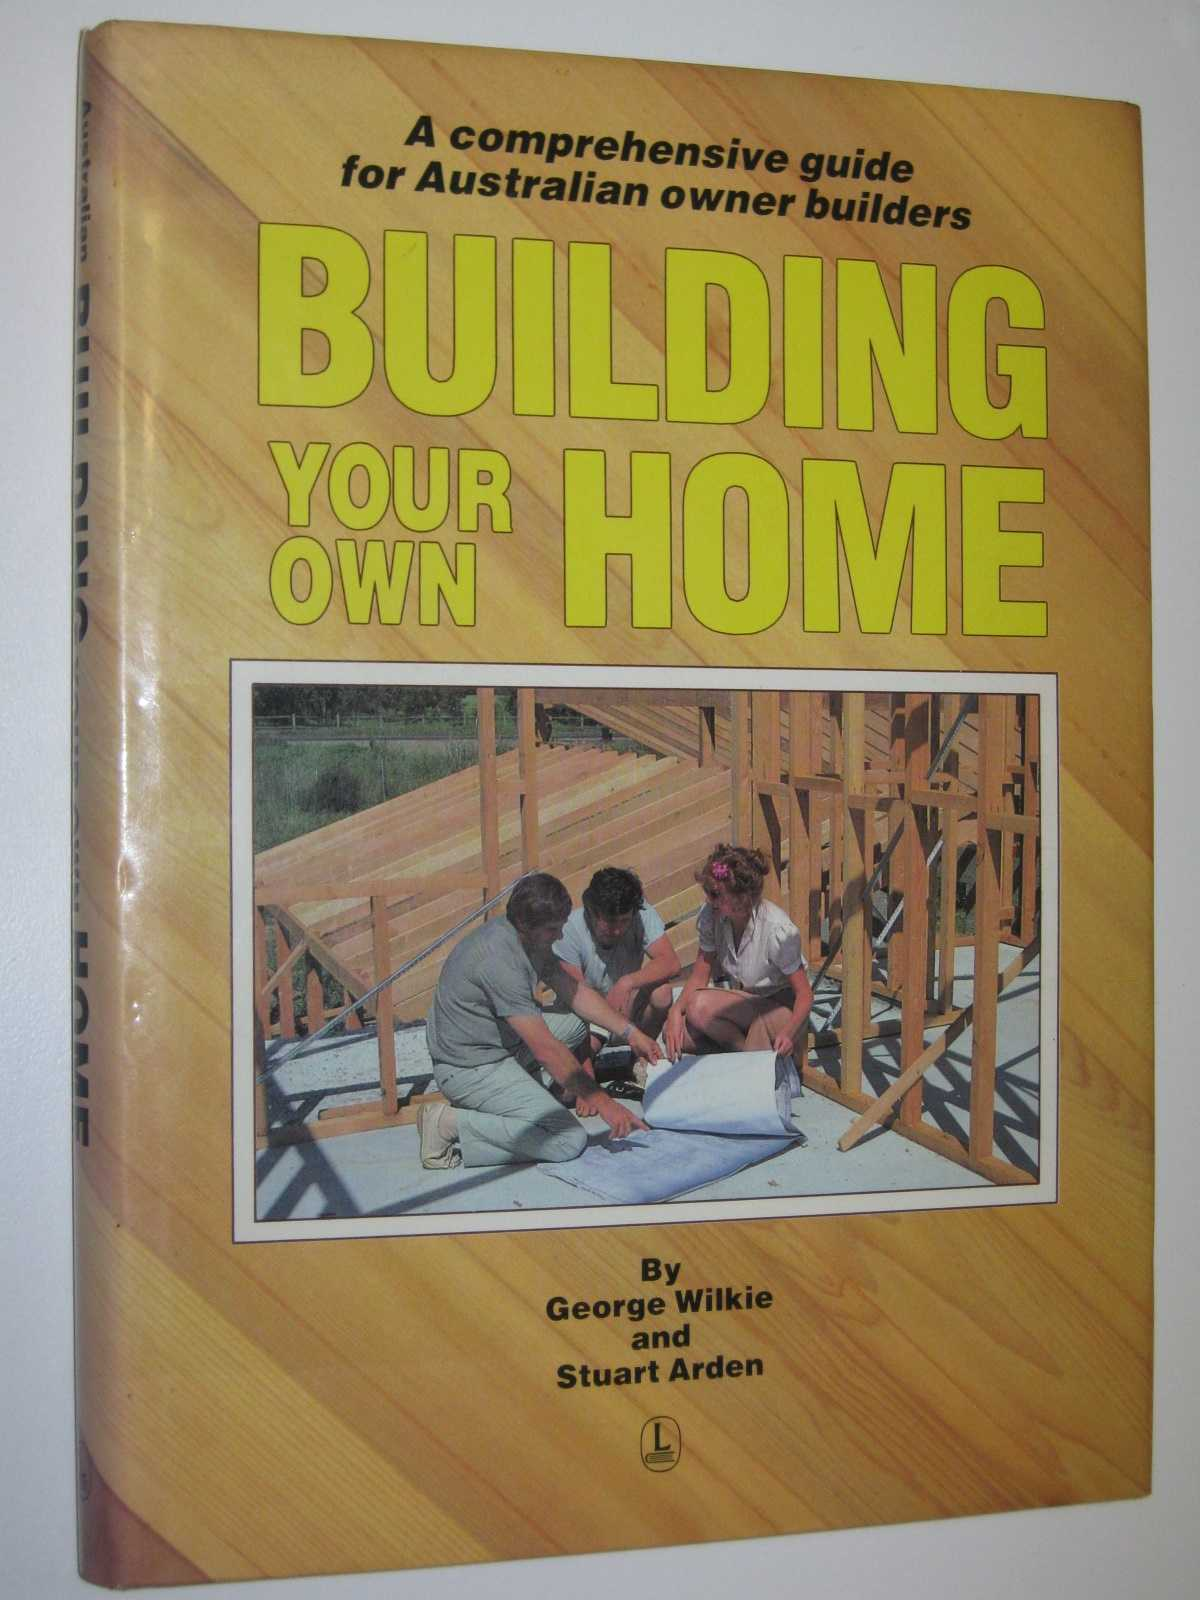 Building Your Own Home : A Comprehensive Guide for Australian Owner Builders, Wilkie, George & Arden, Stuart